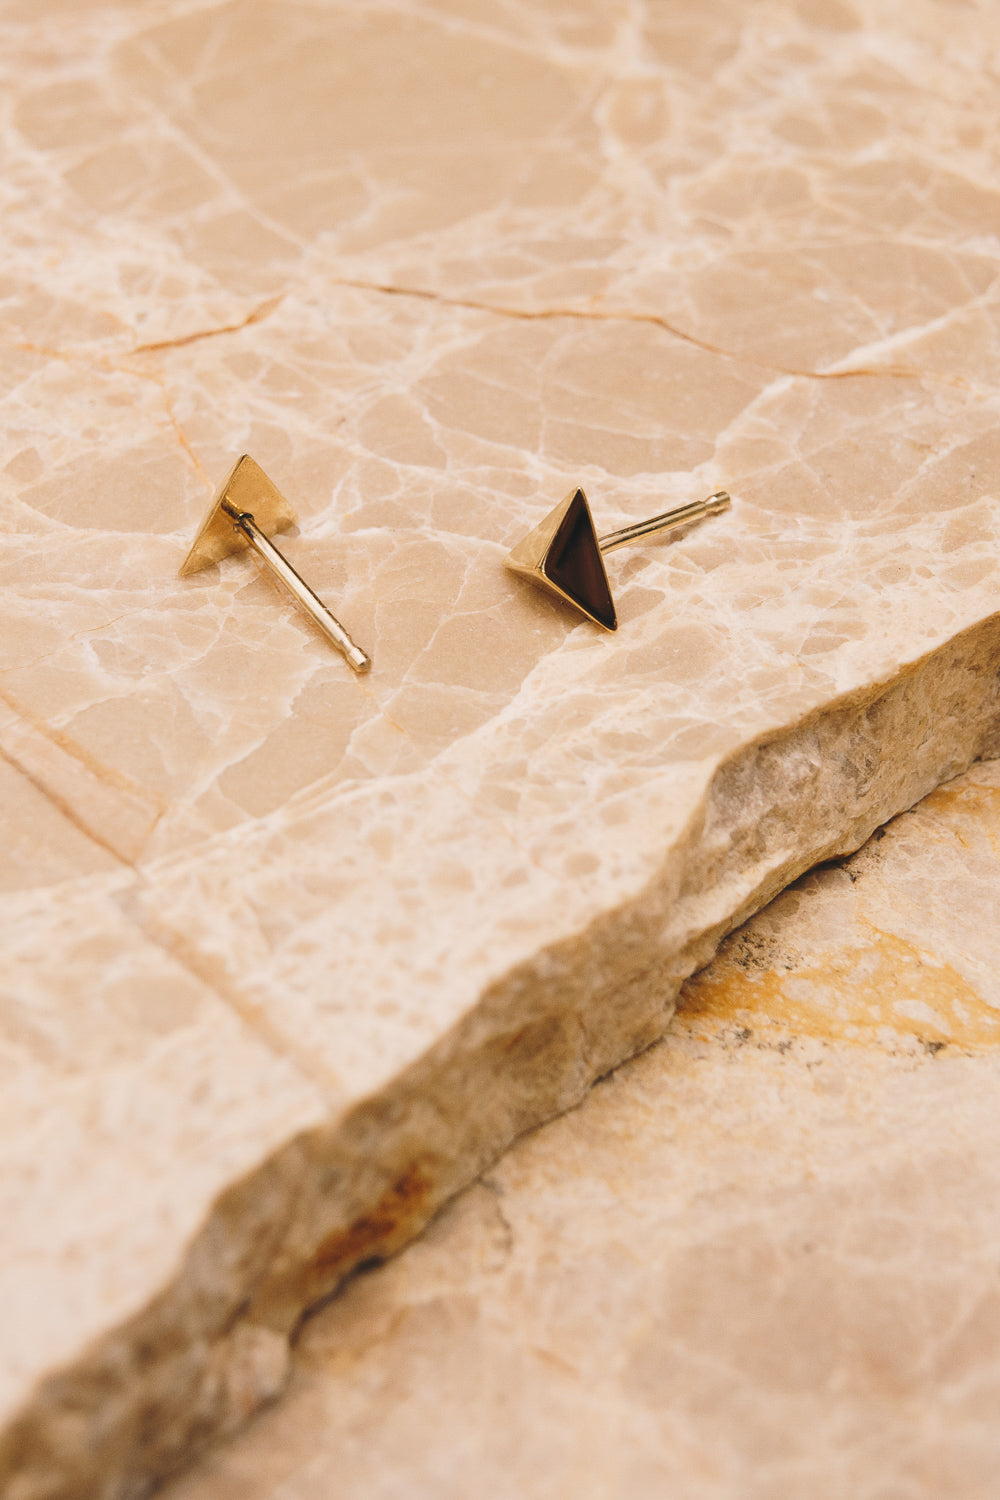 14k gold pyramid stud earrings side and back view